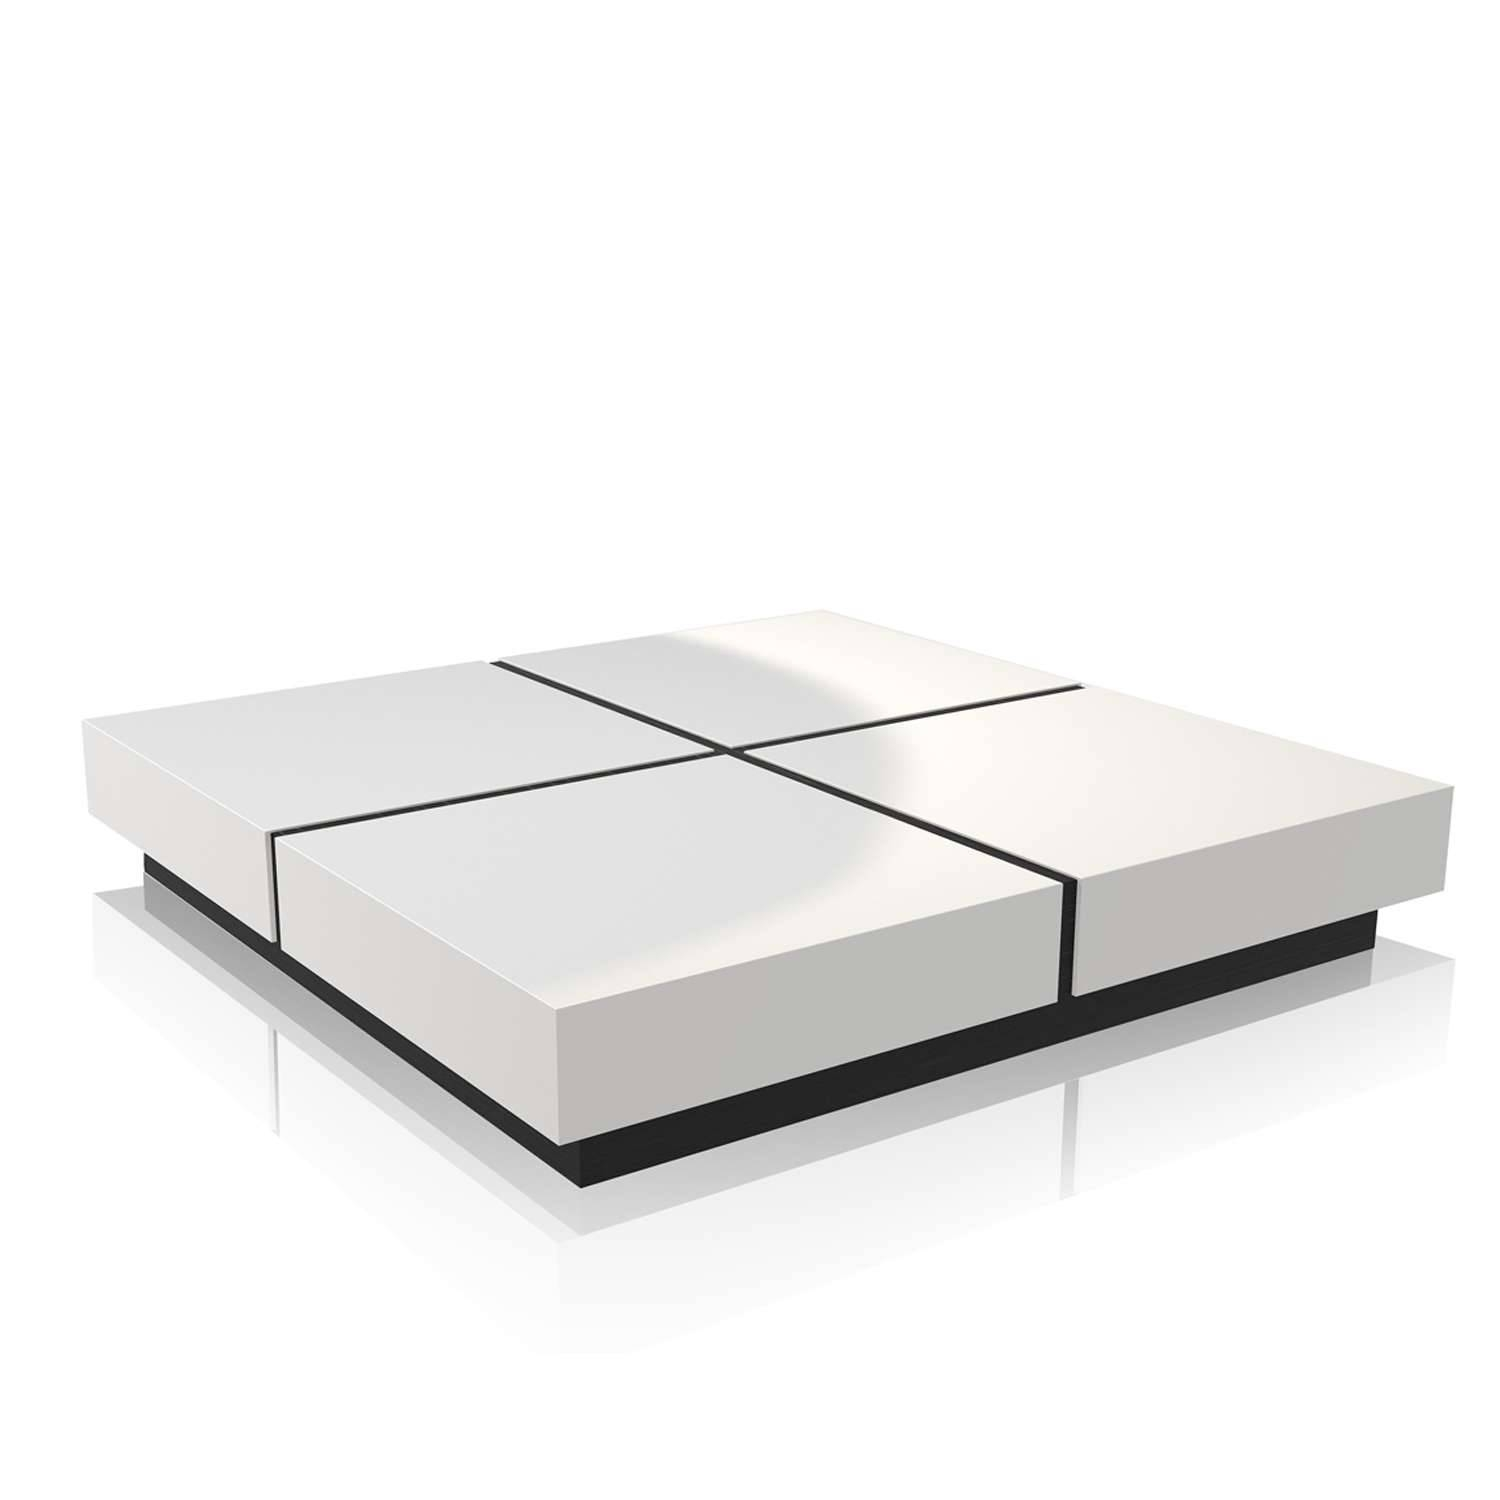 Low Square Coffee Table With Stora / Thippo inside Extra Large Low Coffee Tables (Image 19 of 30)